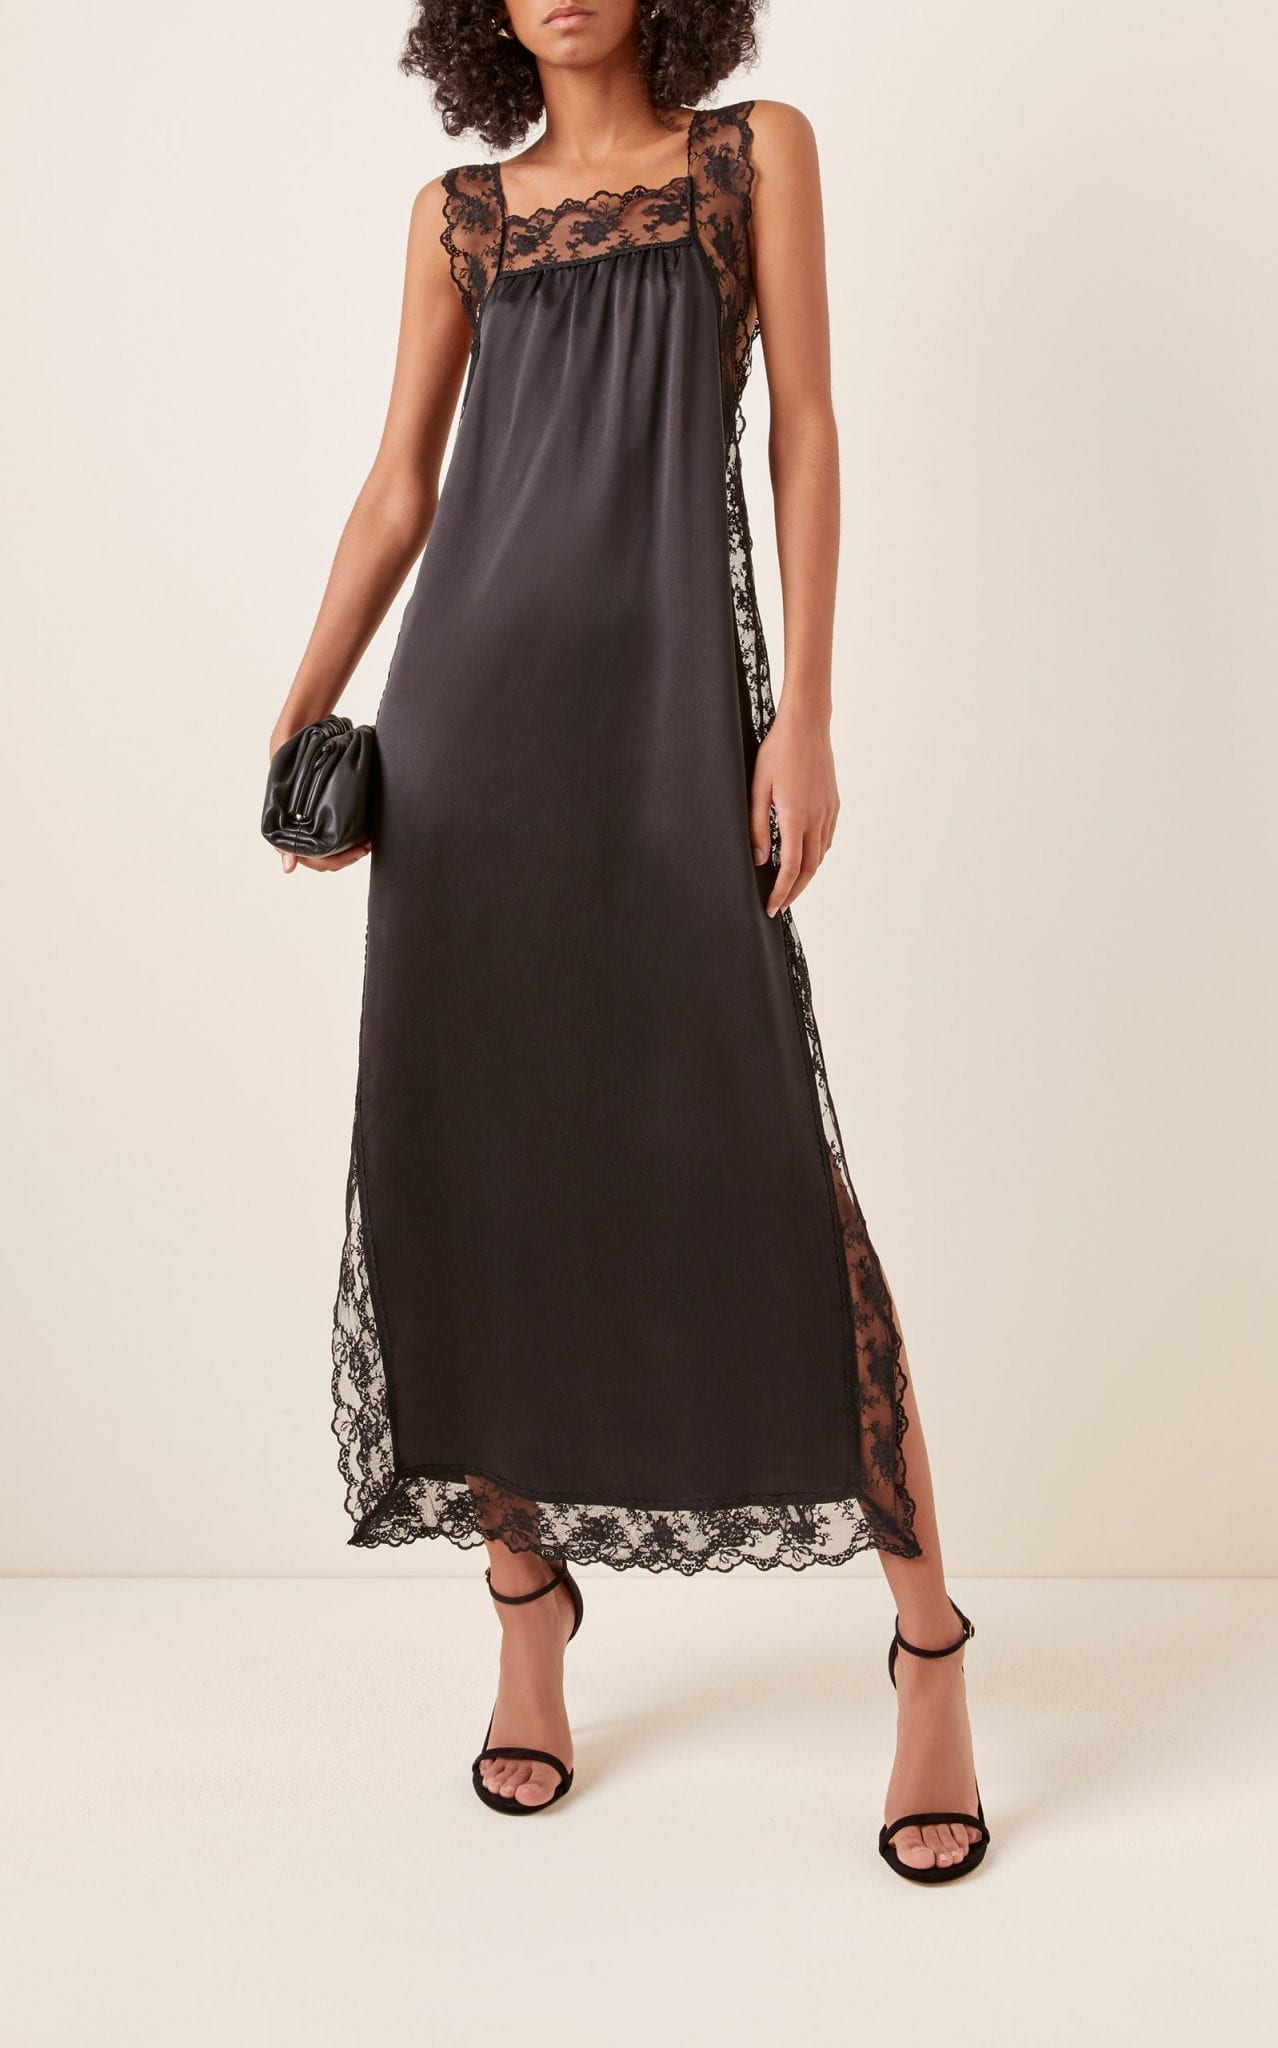 SIR THE LABEL Aries Lace-Trimmed Silk-Satin Slip Dress